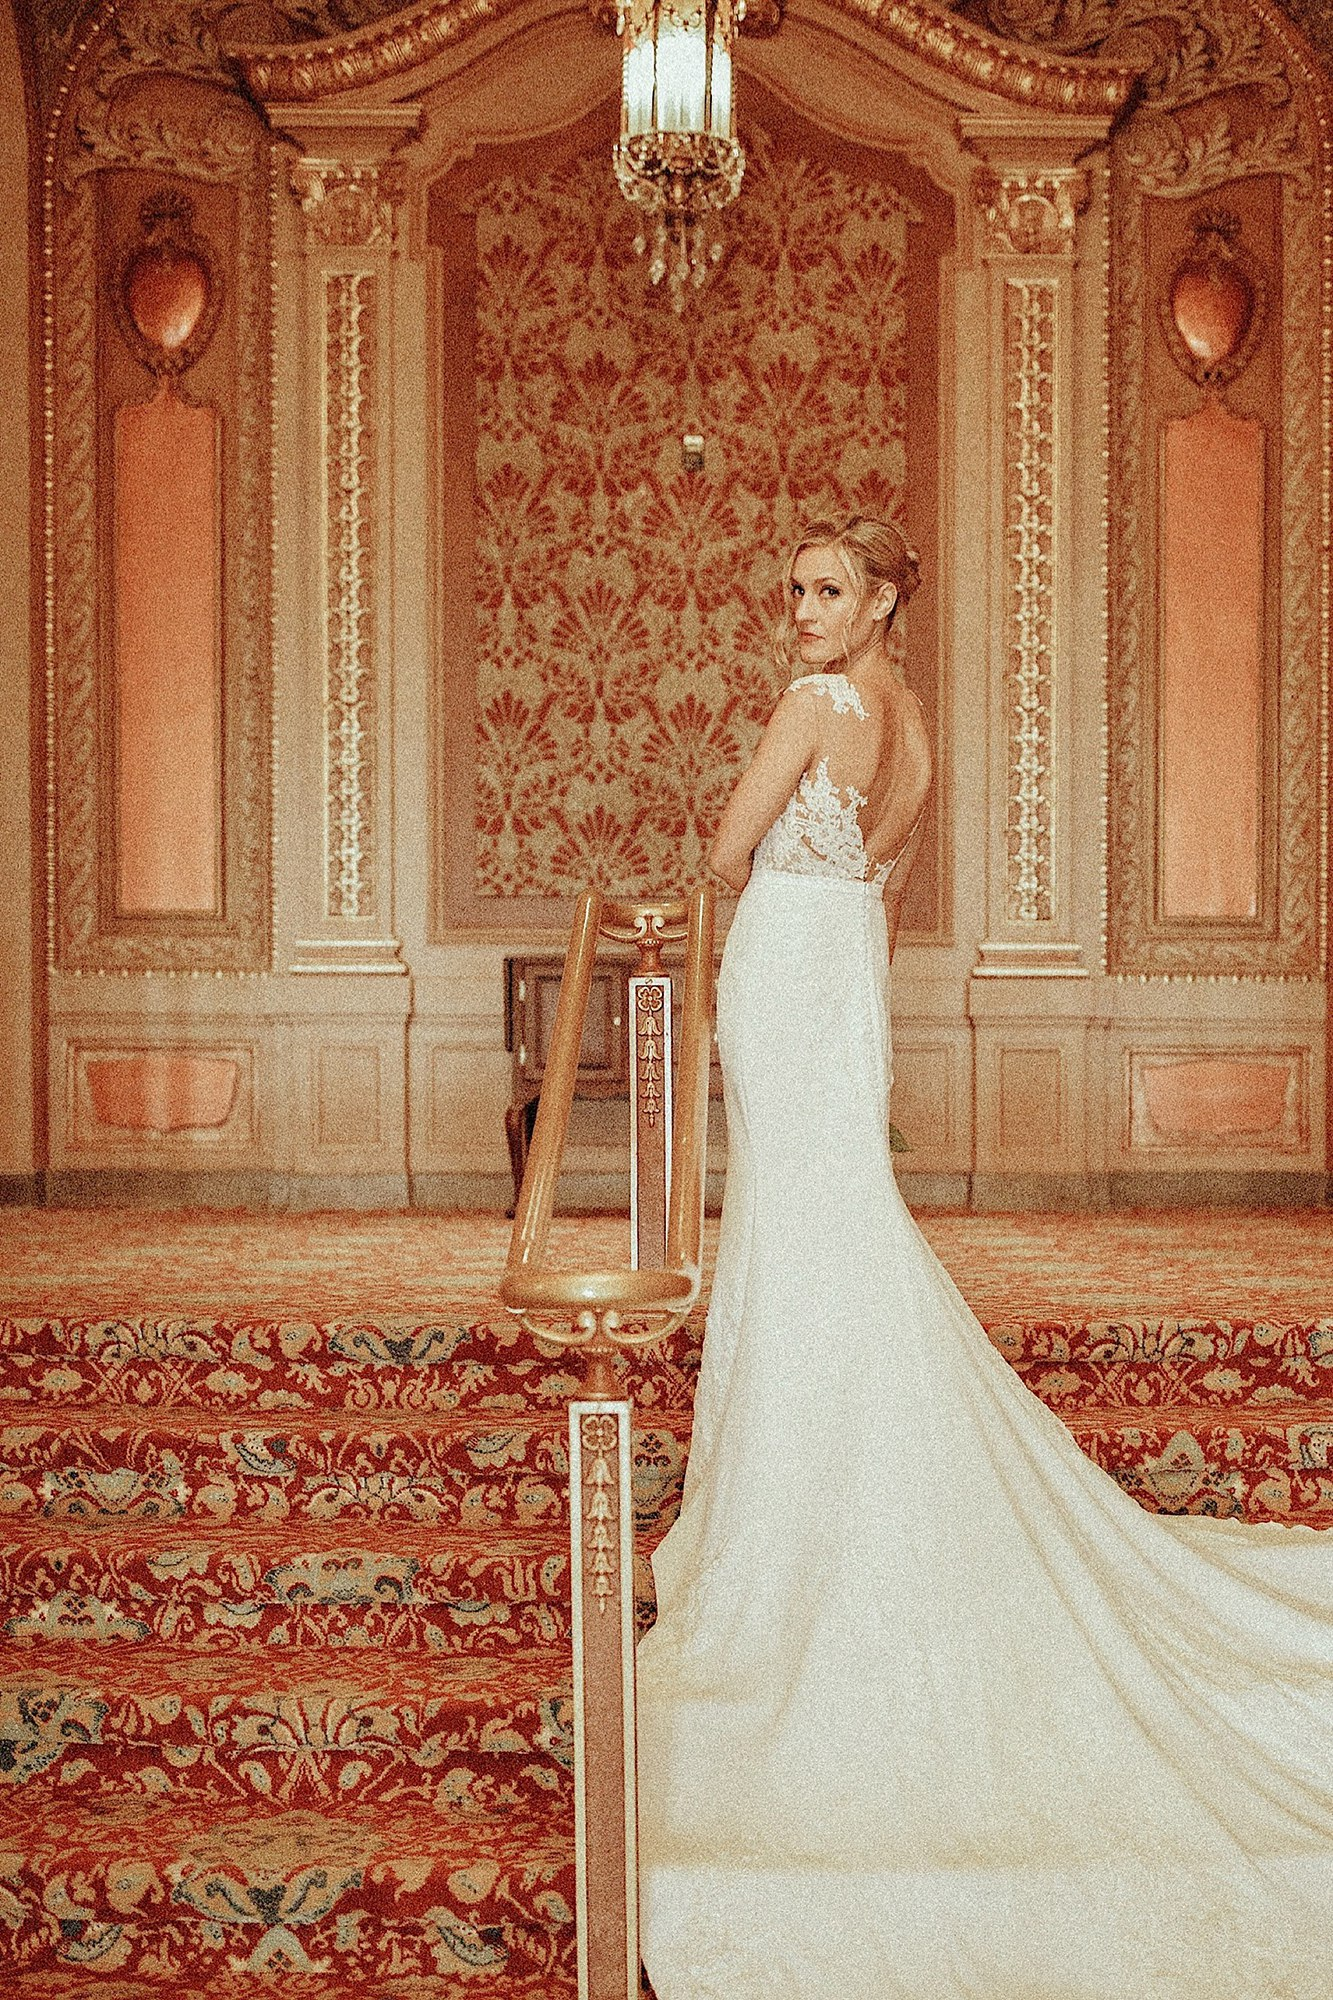 wes Anderson wedding bride standing in pronovias gown in golden historic paramount theater